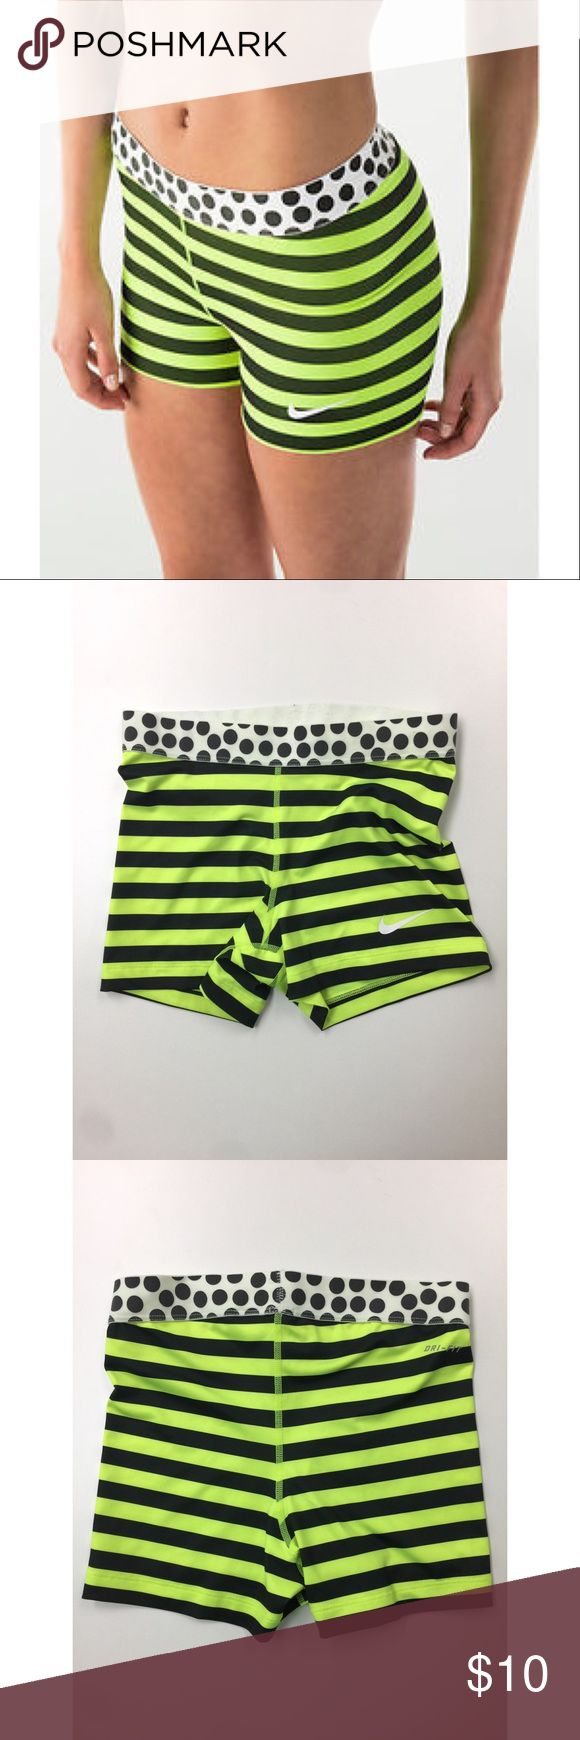 Nike Dri-Fit stripes women's training shorts New without a tag. I got it for a gift but it's not my style. Color: Bright Yellow/Green, Size: Medium Nike Shorts